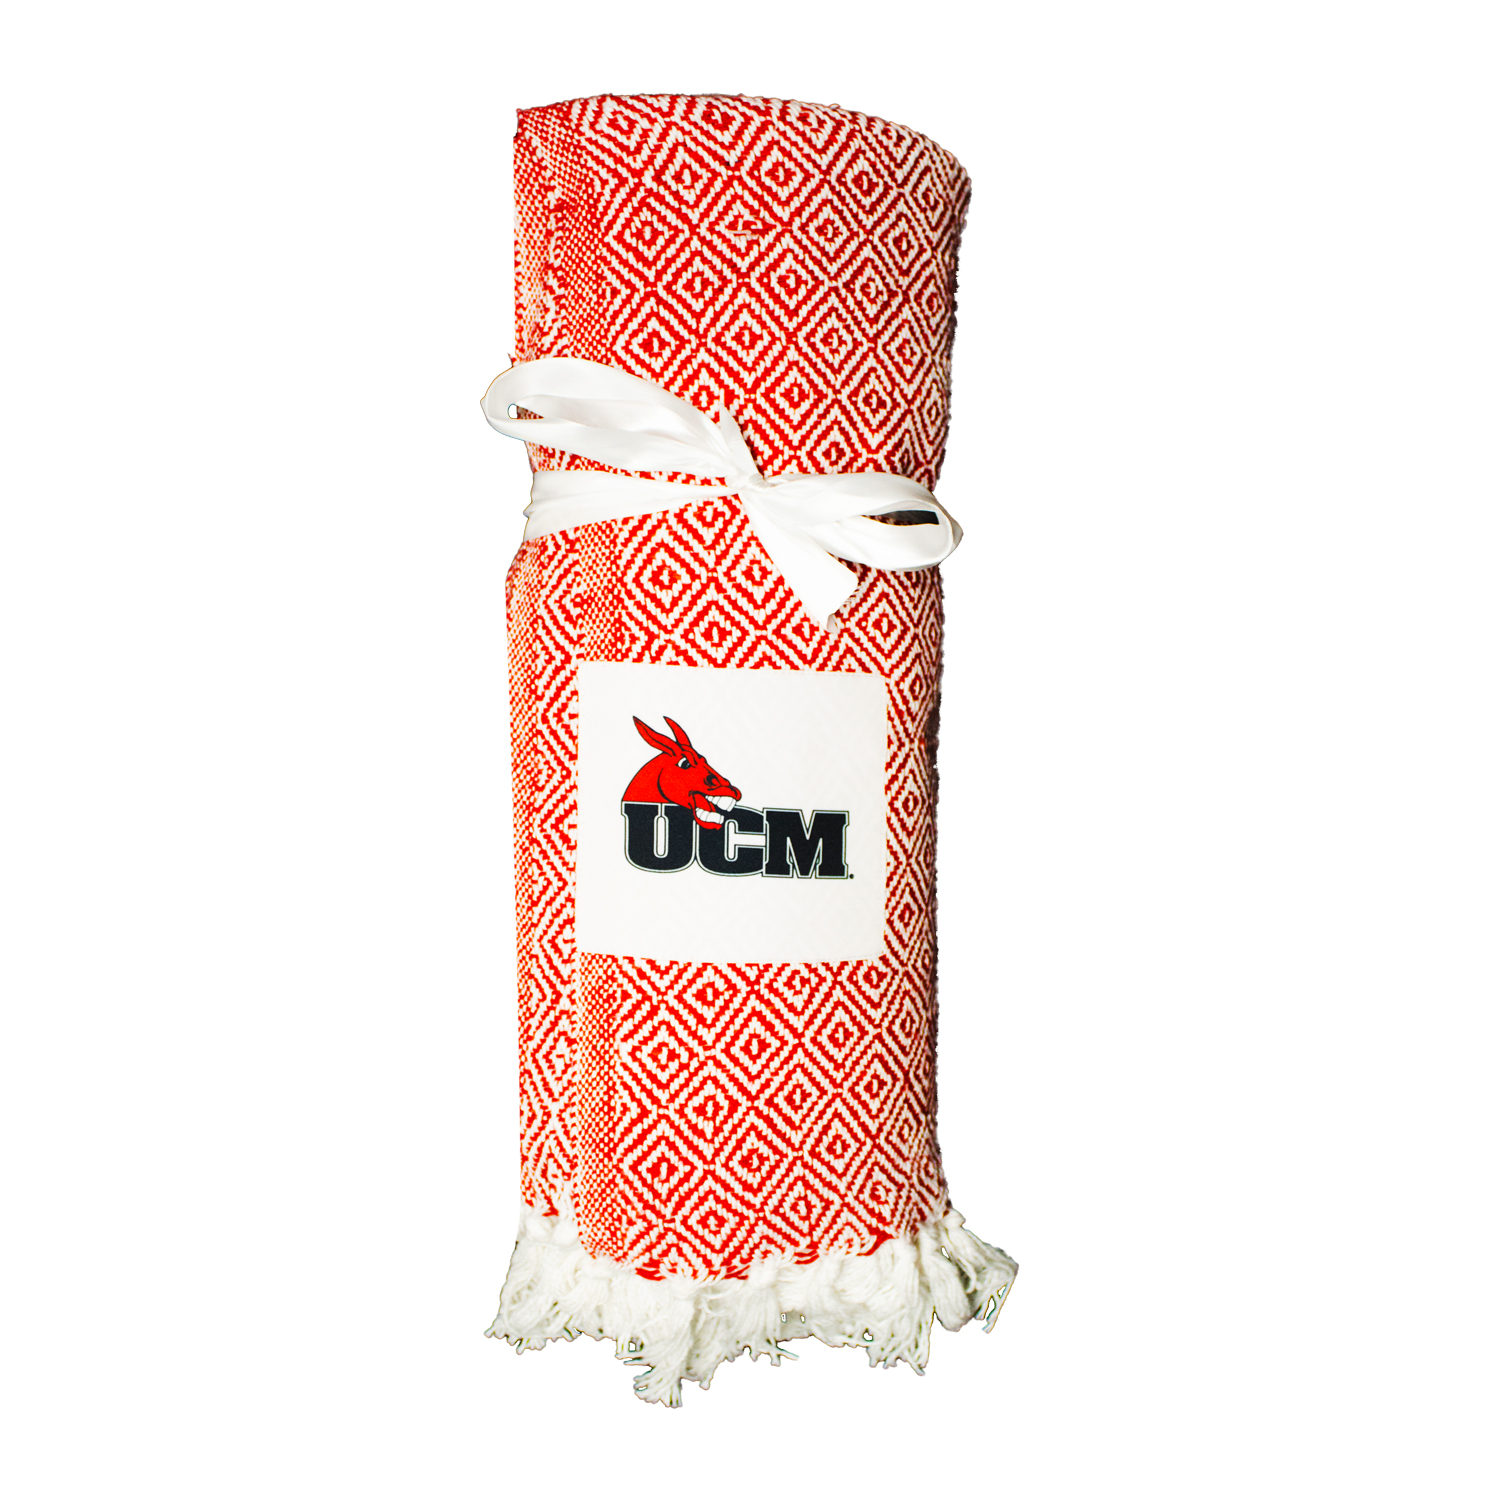 Cover Image For UCM BLANKET - WOVEN THROW